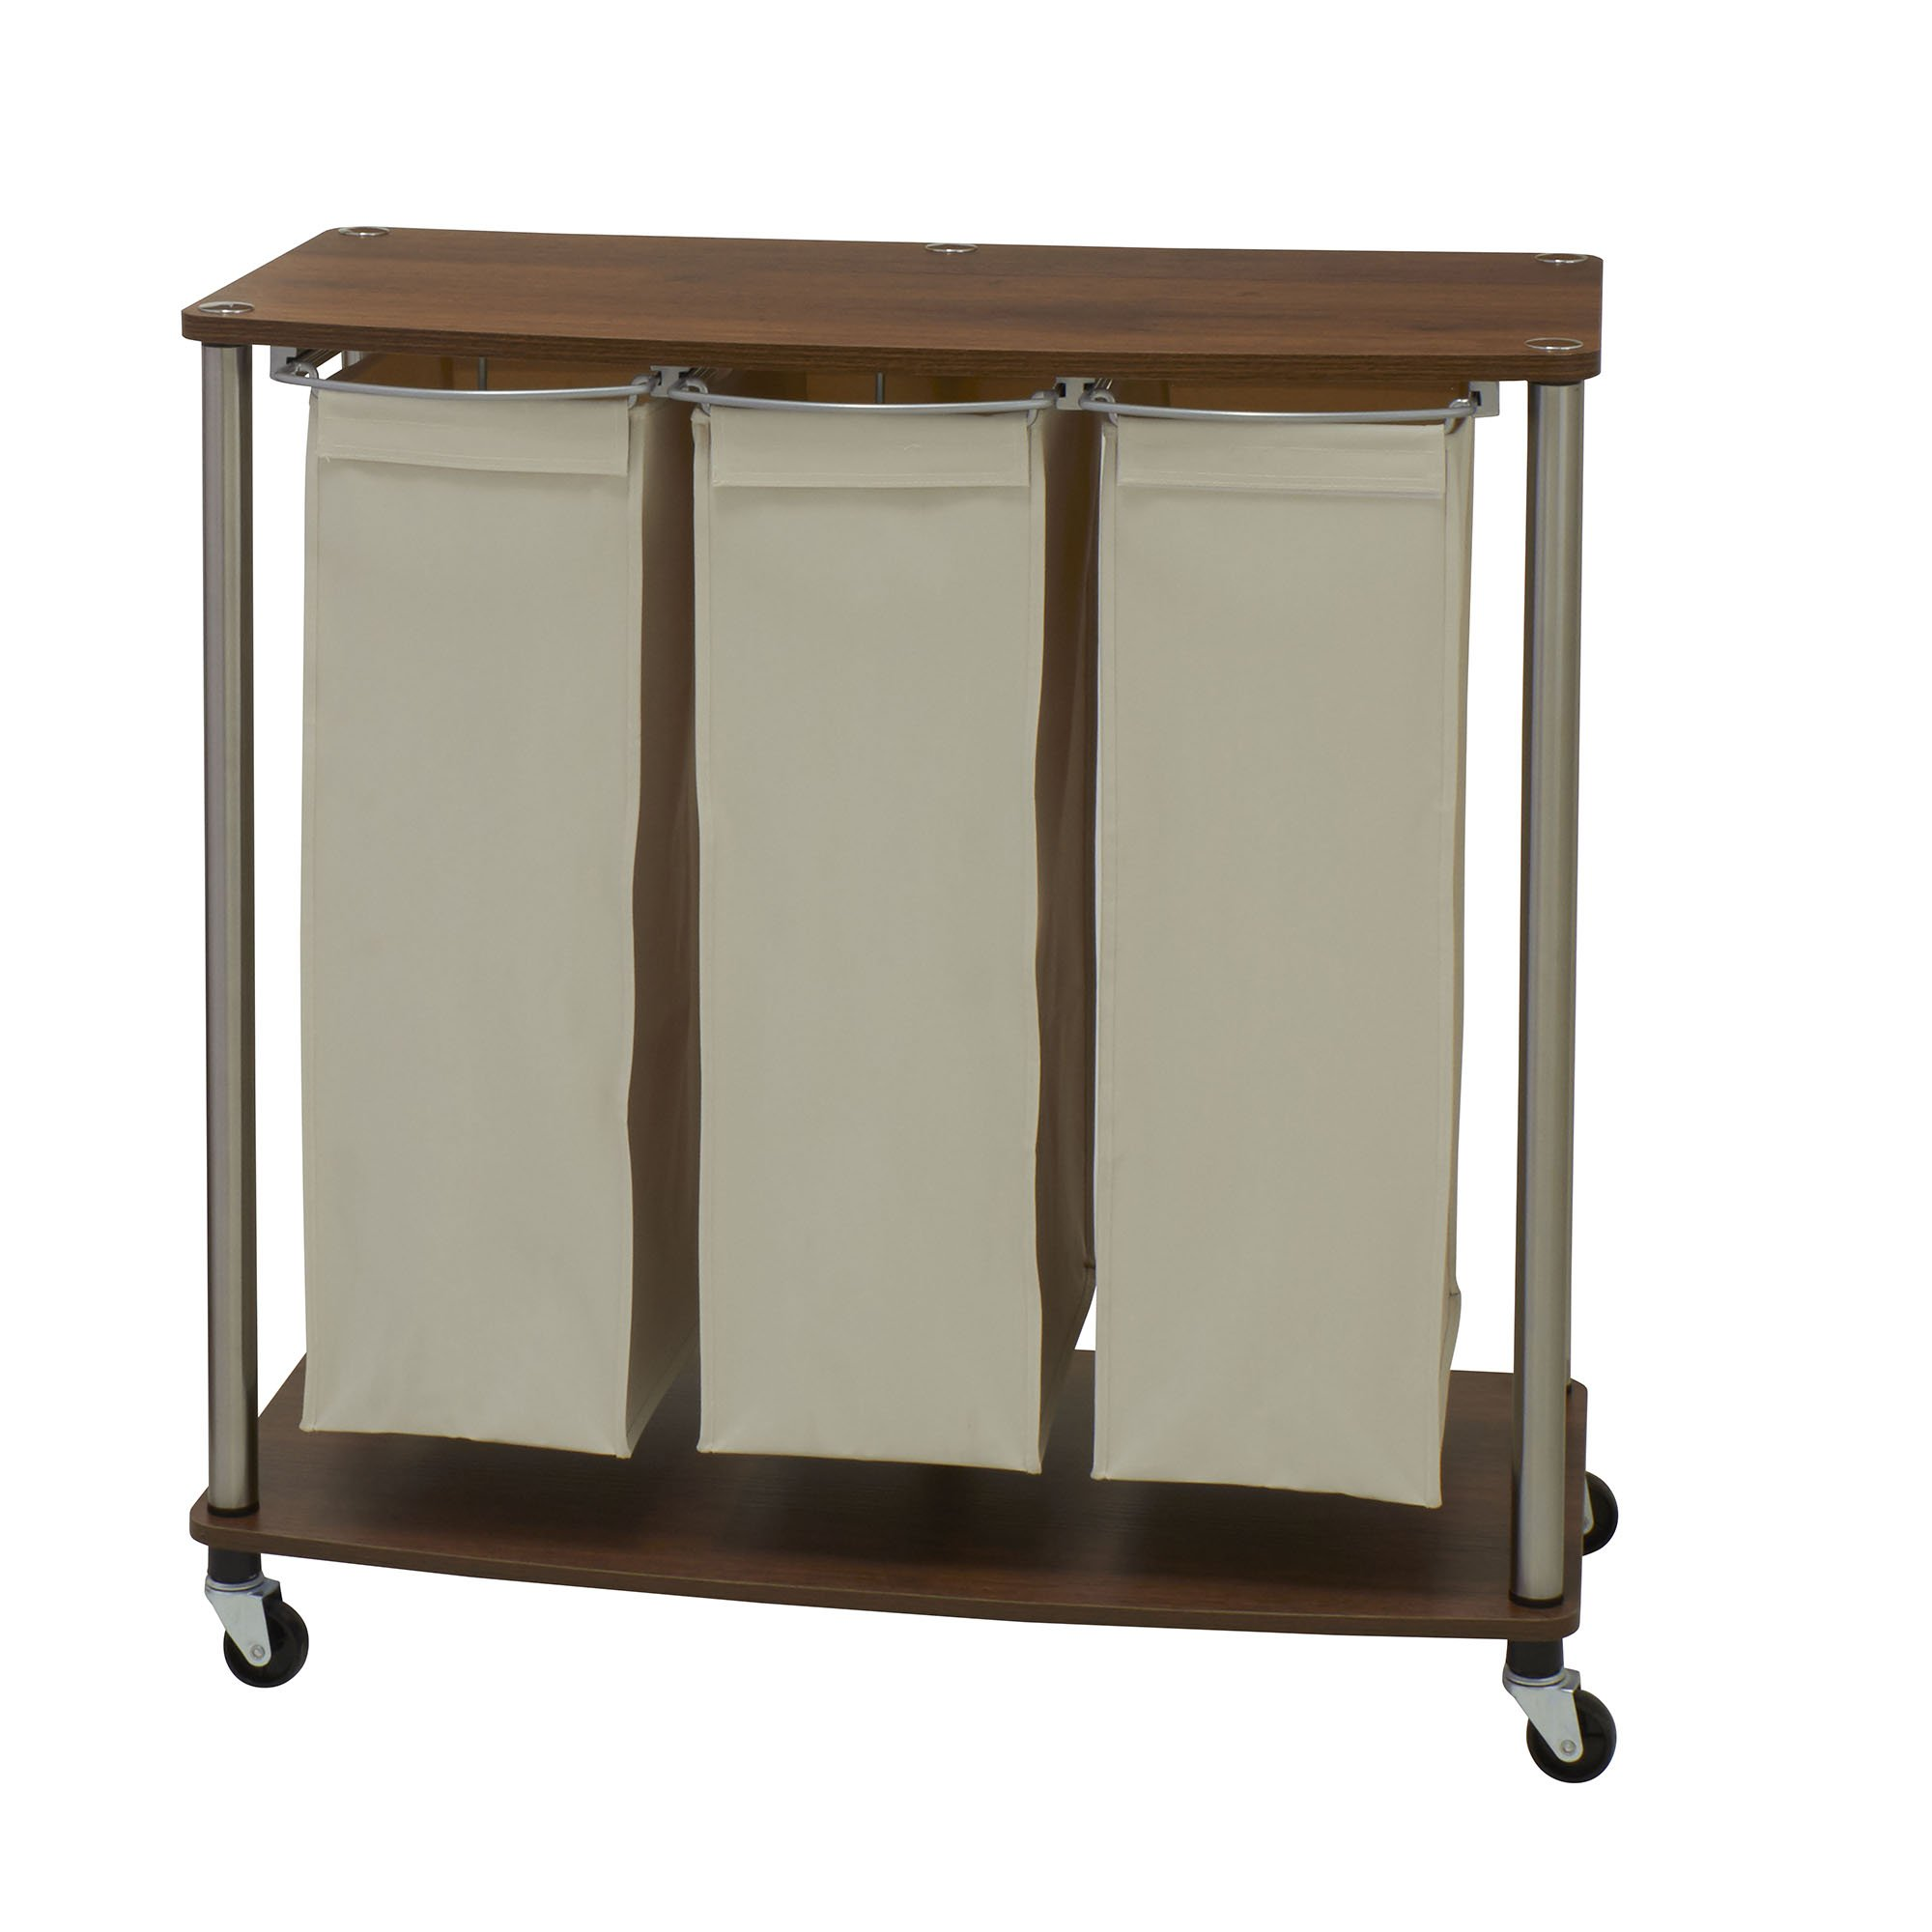 Household Essentials 7060-1 Walnut Triple Laundry Sorter with Folding Table